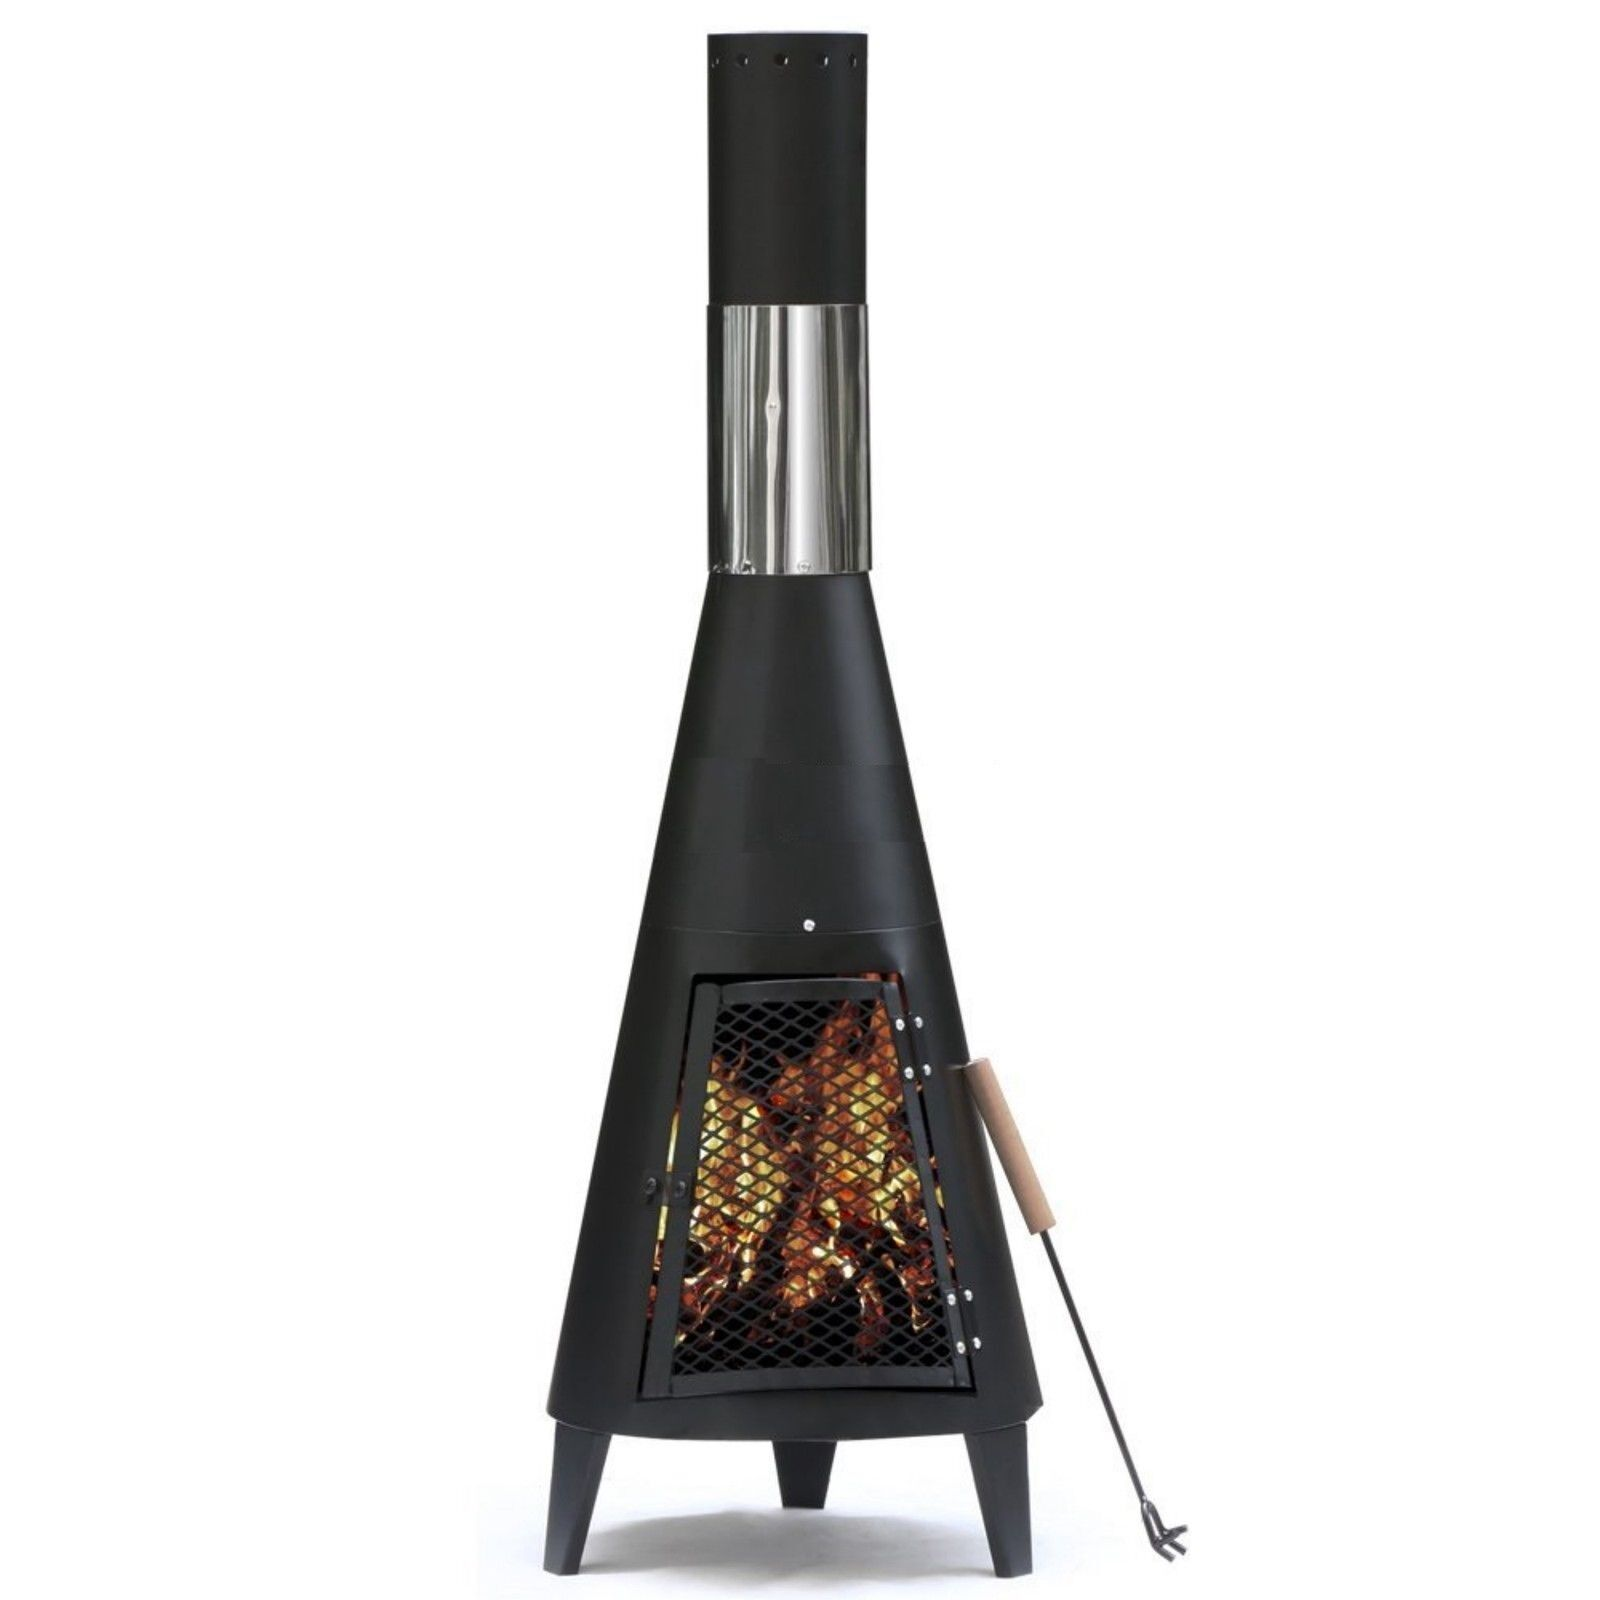 Chiminea Burner: GARDEN STEEL CHIMENEA Chimnea Chiminea Patio Heater Fire